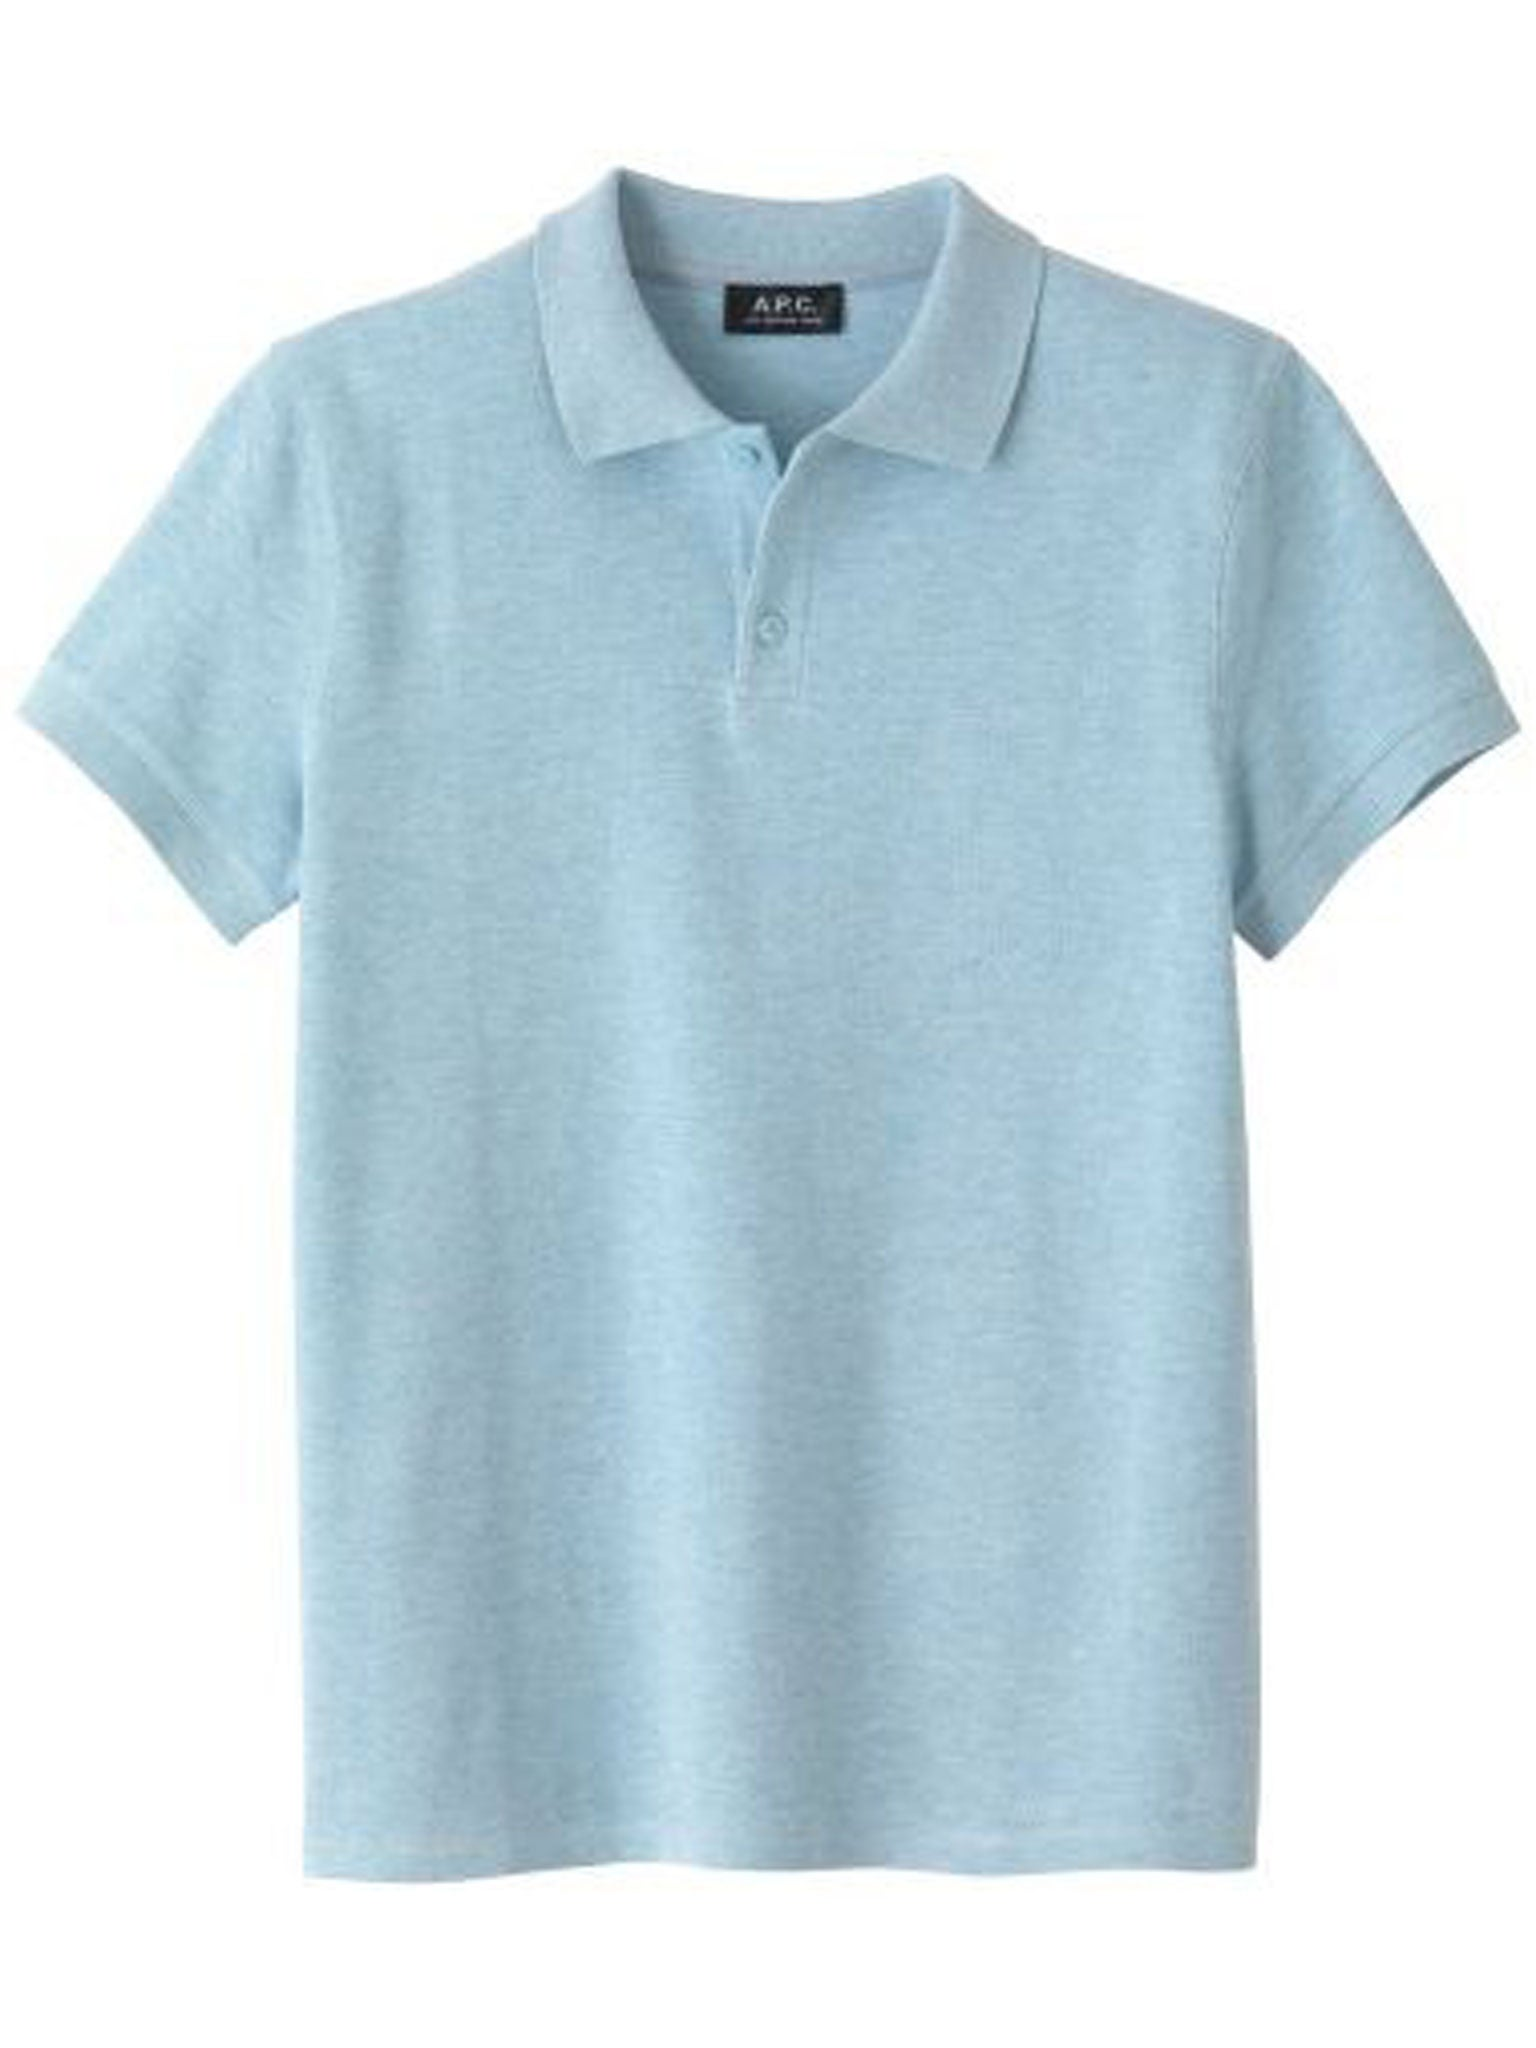 909a1f06b The 10 best polo shirts | The Independent